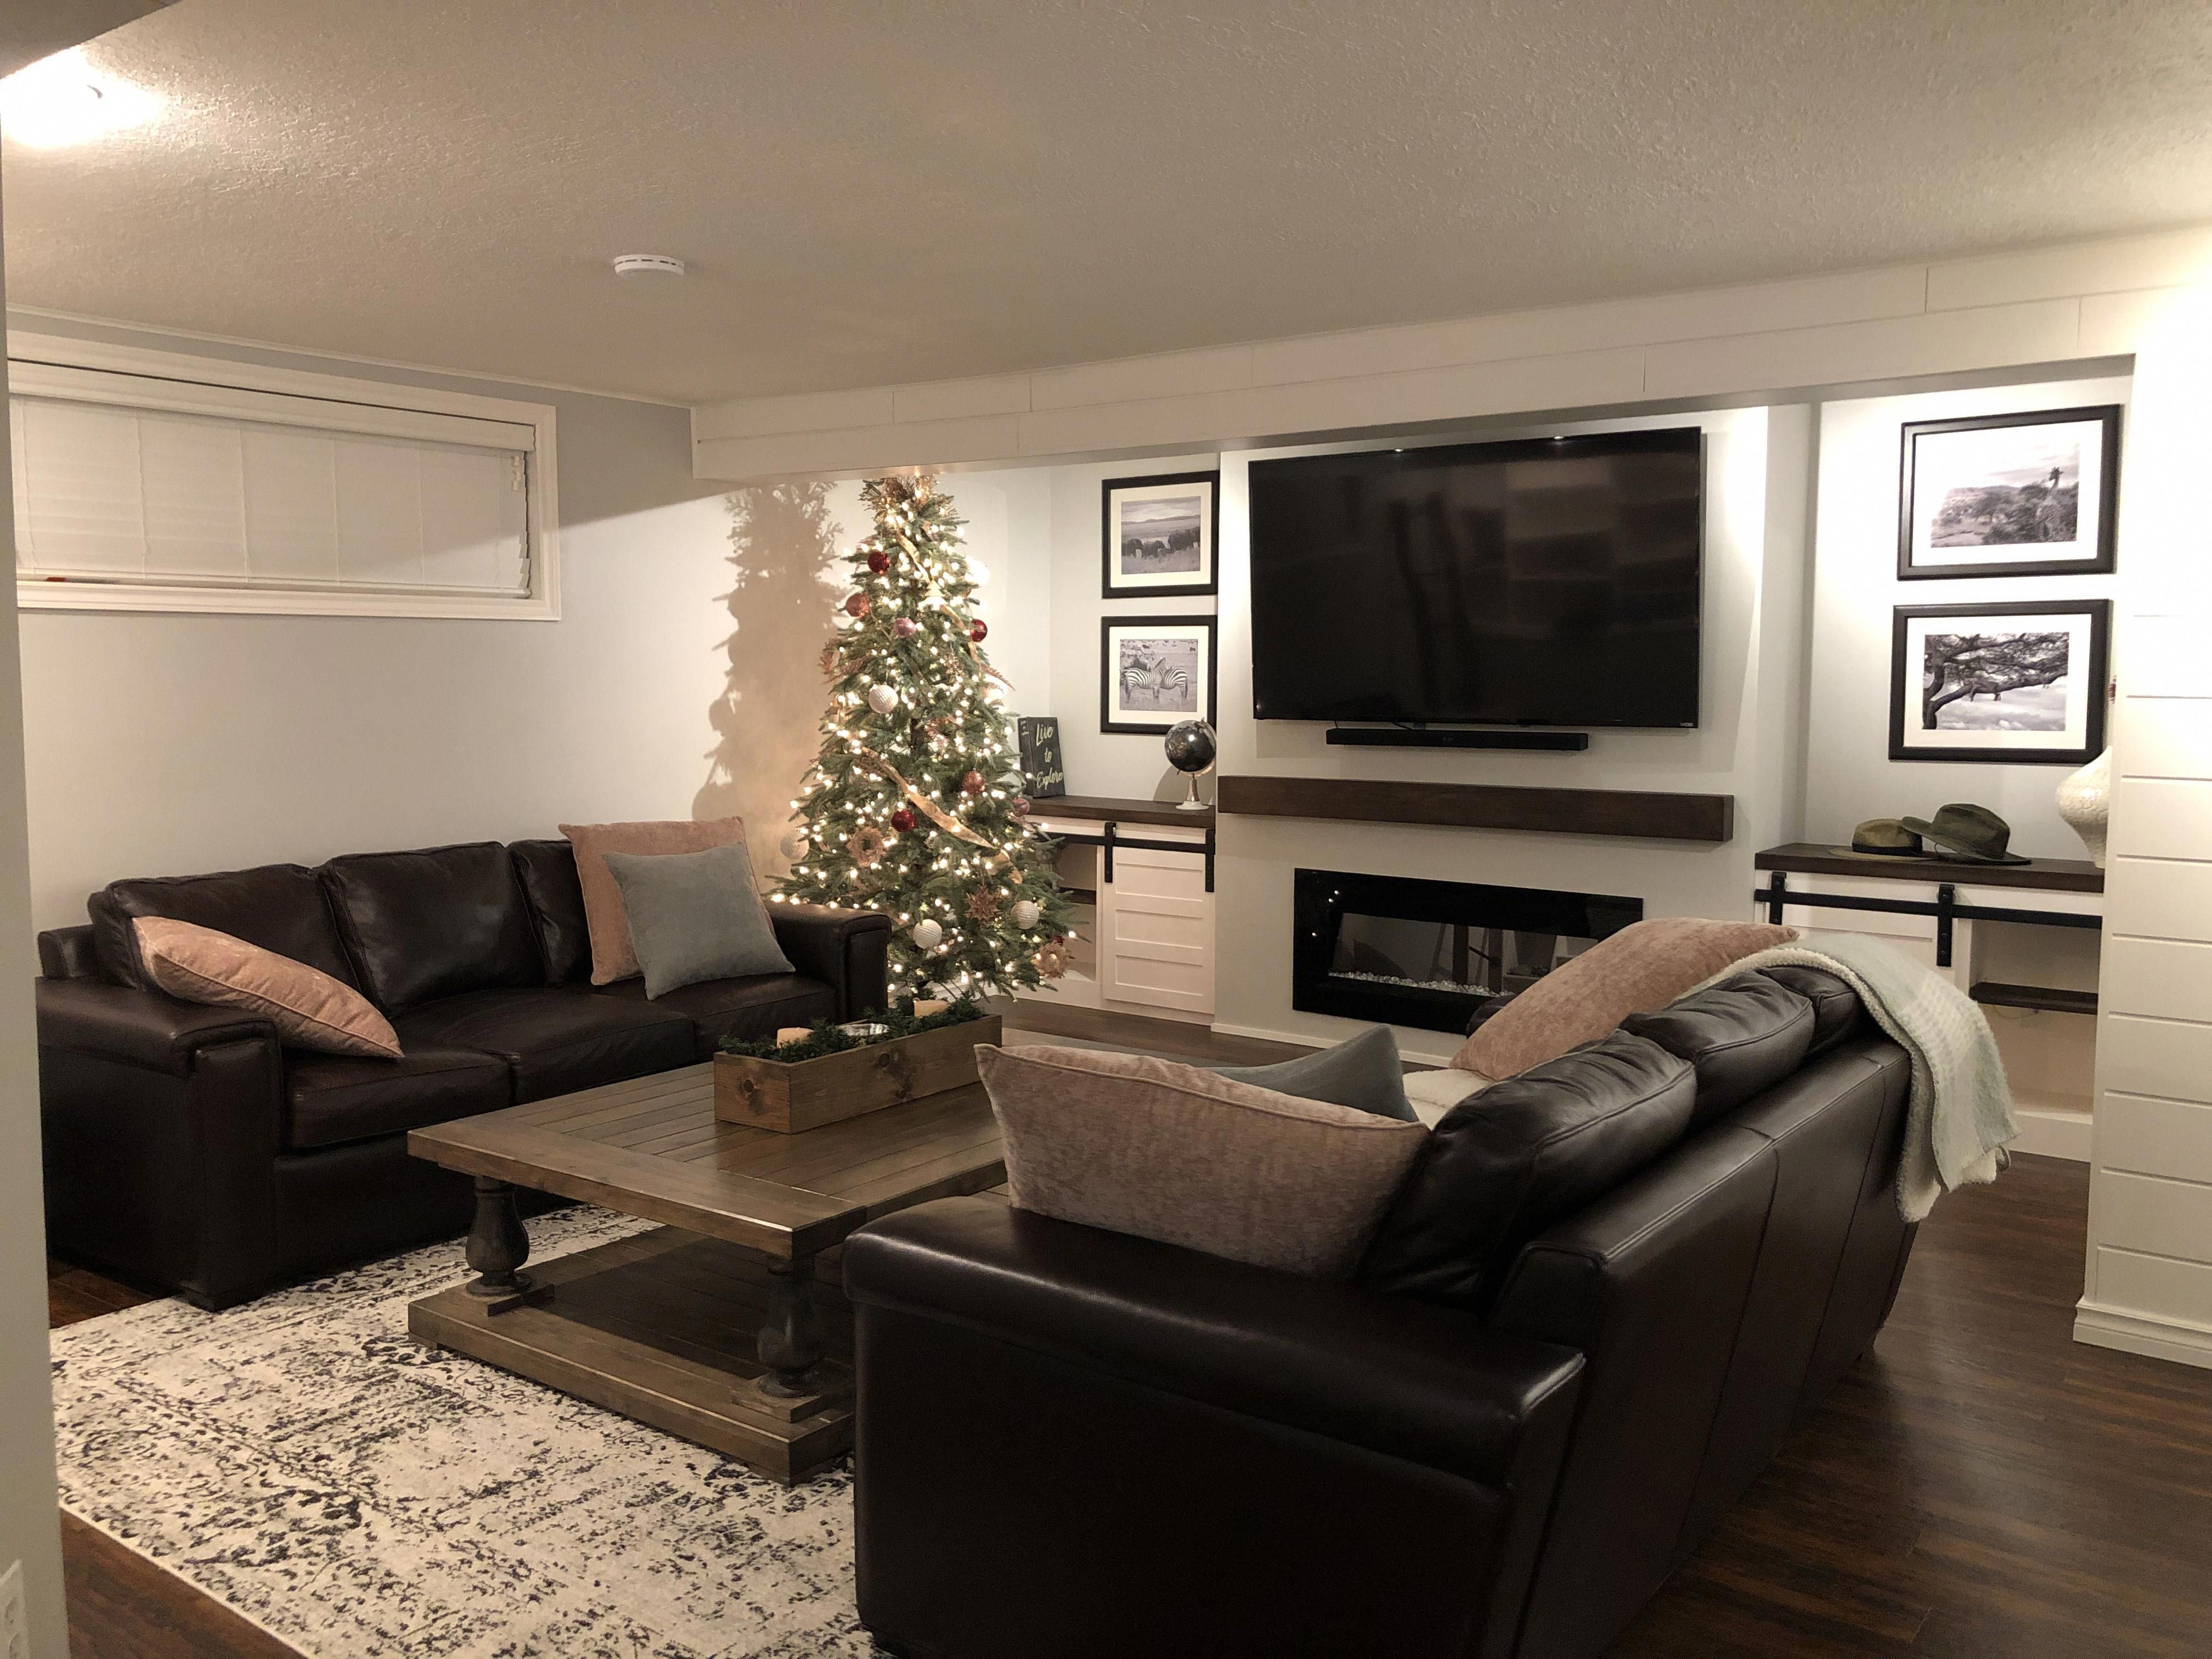 Diy Finished Basement By Zavywoodworks Dark Brown Flooring Grey Walls Maple Wood Features Brown Living Room Decor Brown Living Room Diy Finish Basement